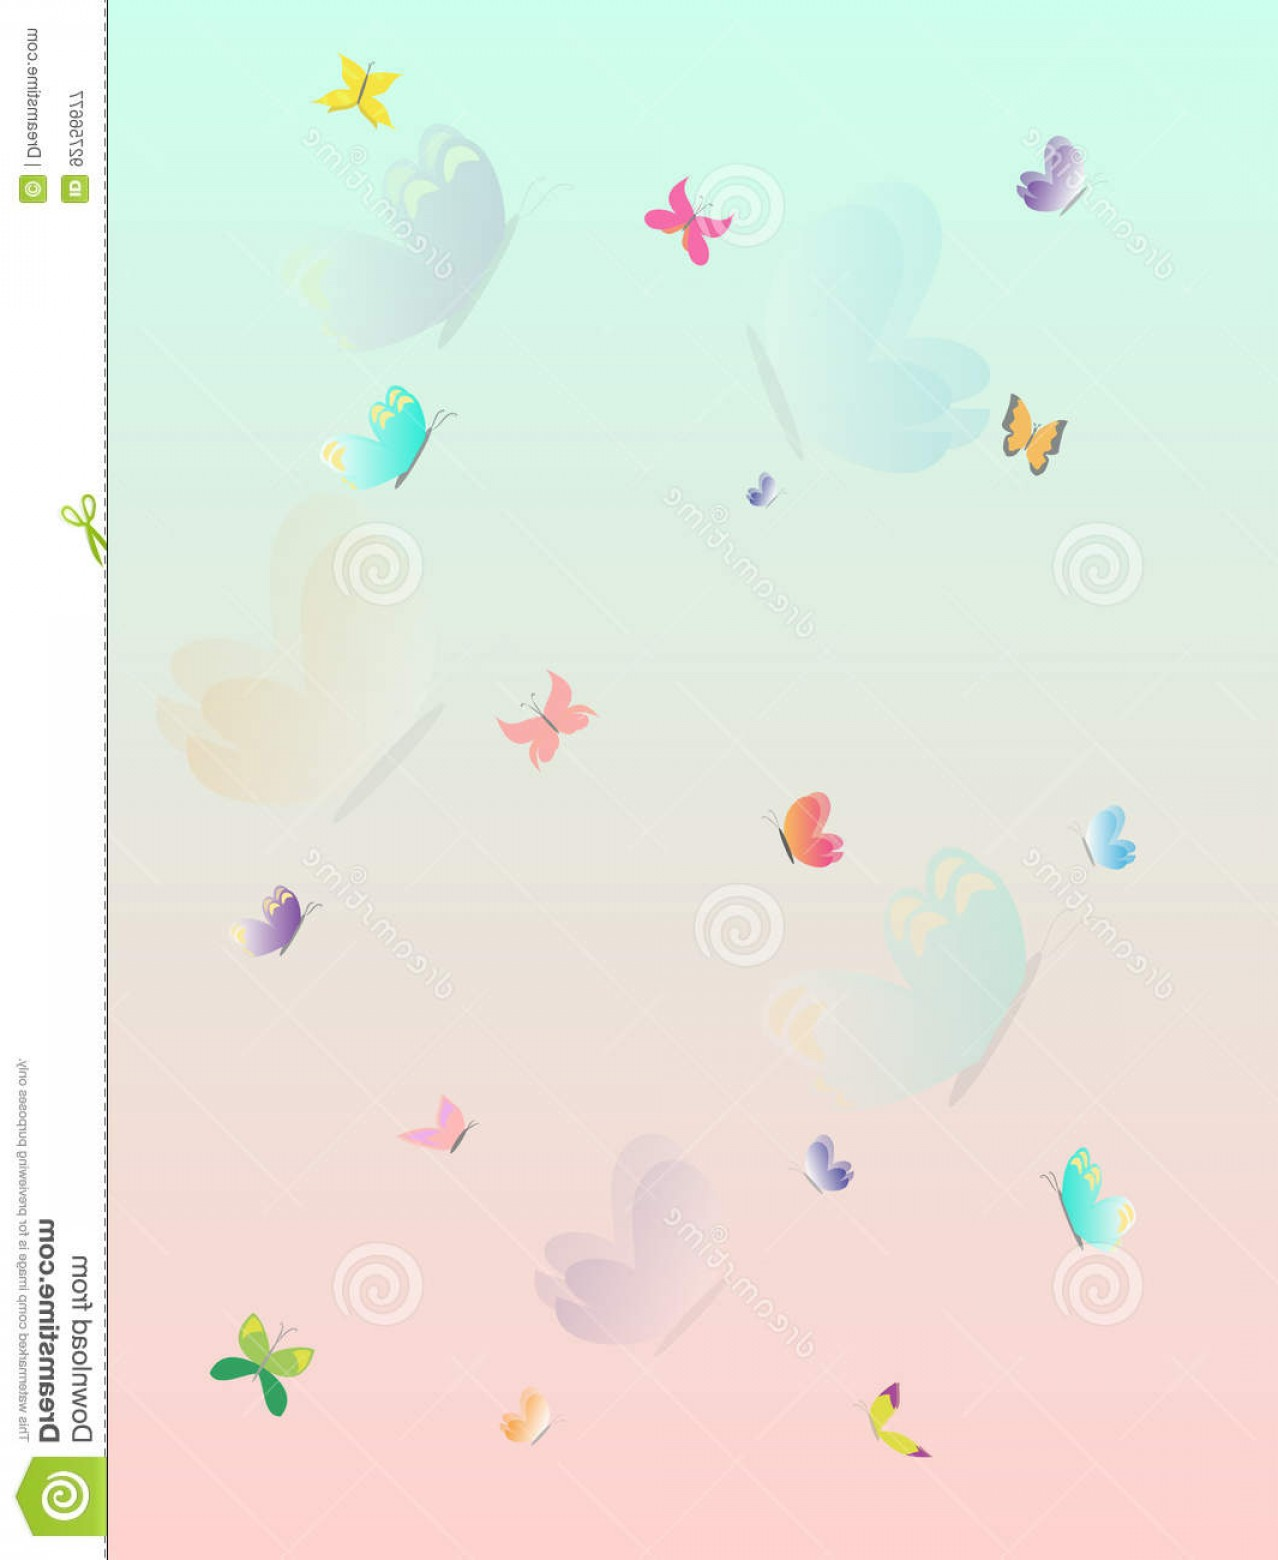 Purple Butterfly Wallpaper Vector: Stock Illustration Colorful Butterfly Summer Splash Beautiful Wallpaper Layered Vector Illustration Pink Blue Orange Purple Image